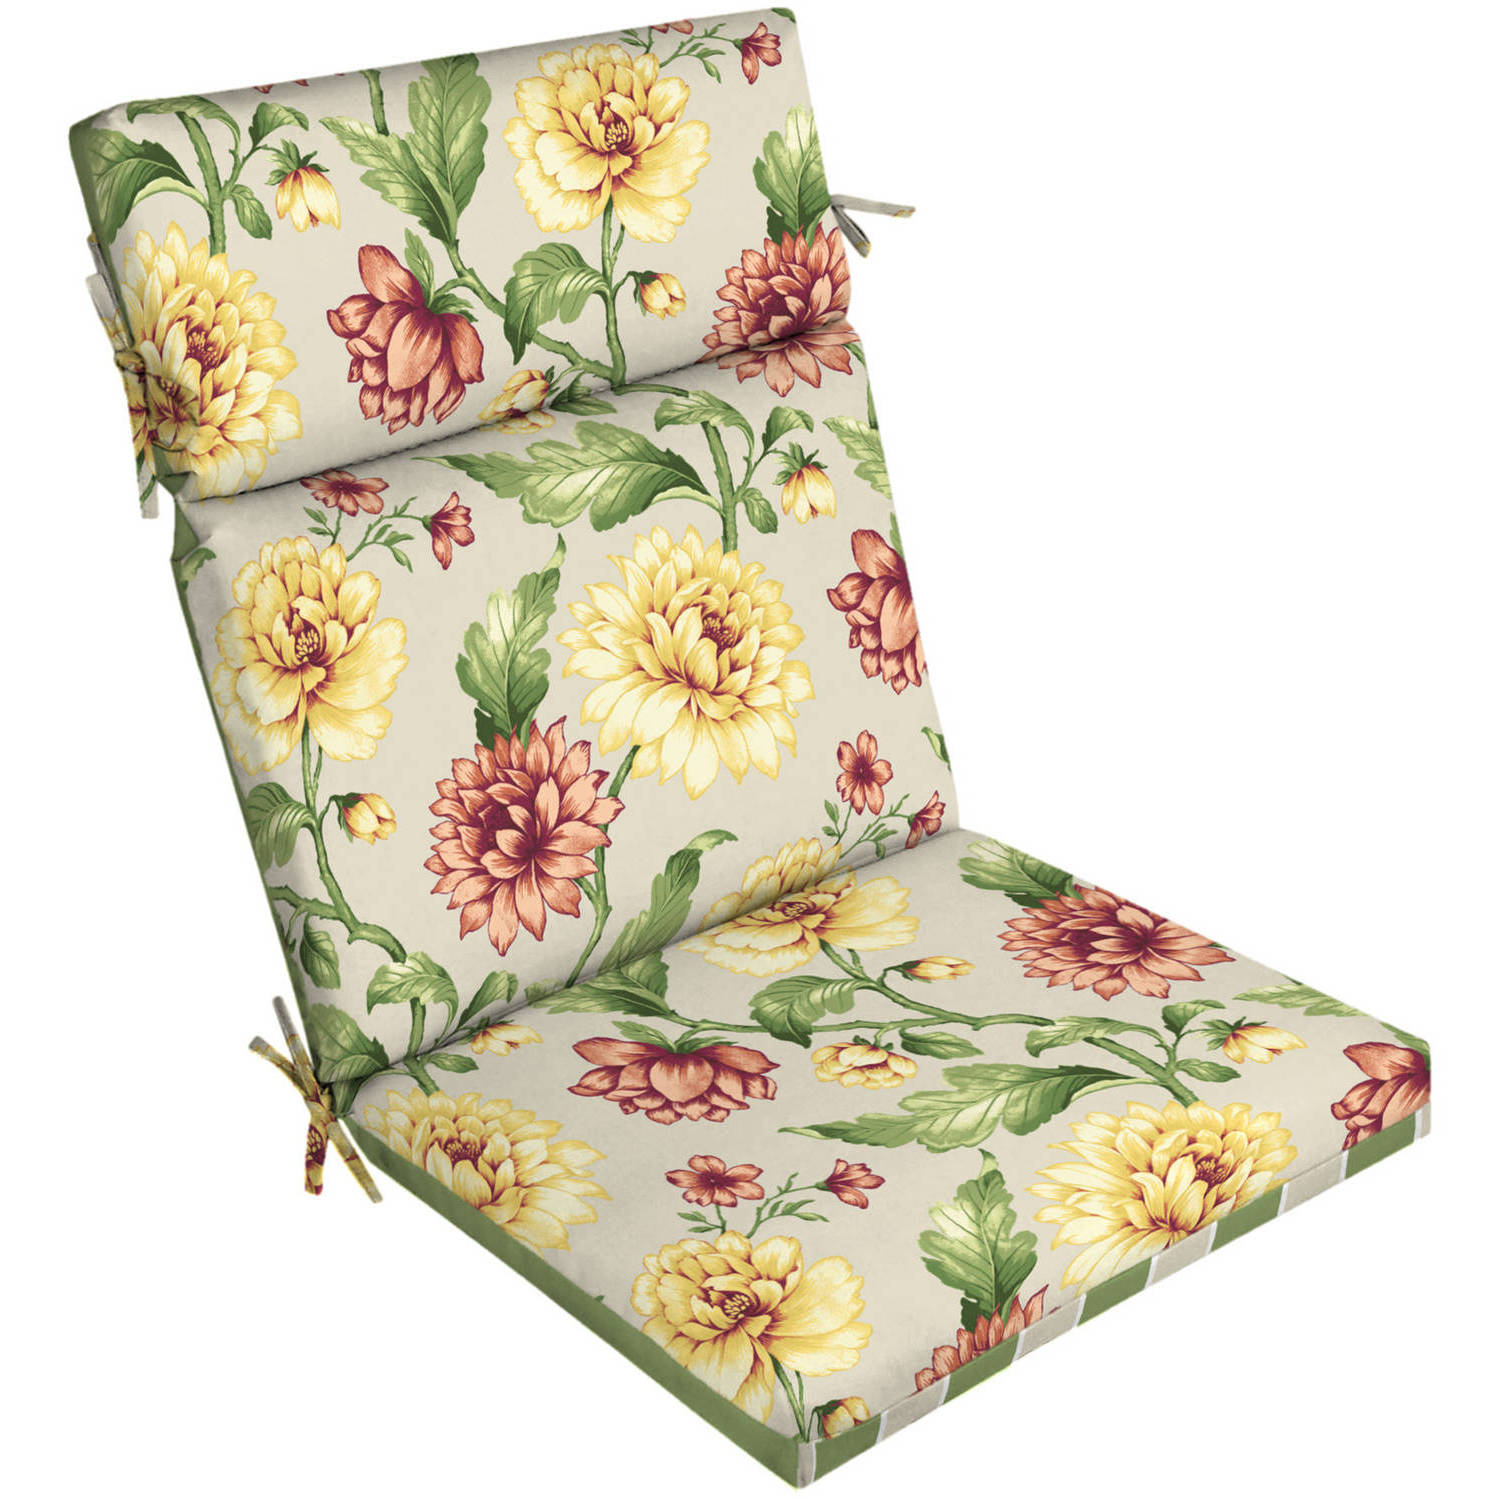 Better Homes And Gardens Outdoor Patio Reversible Dining Chair Cushion,  Floral